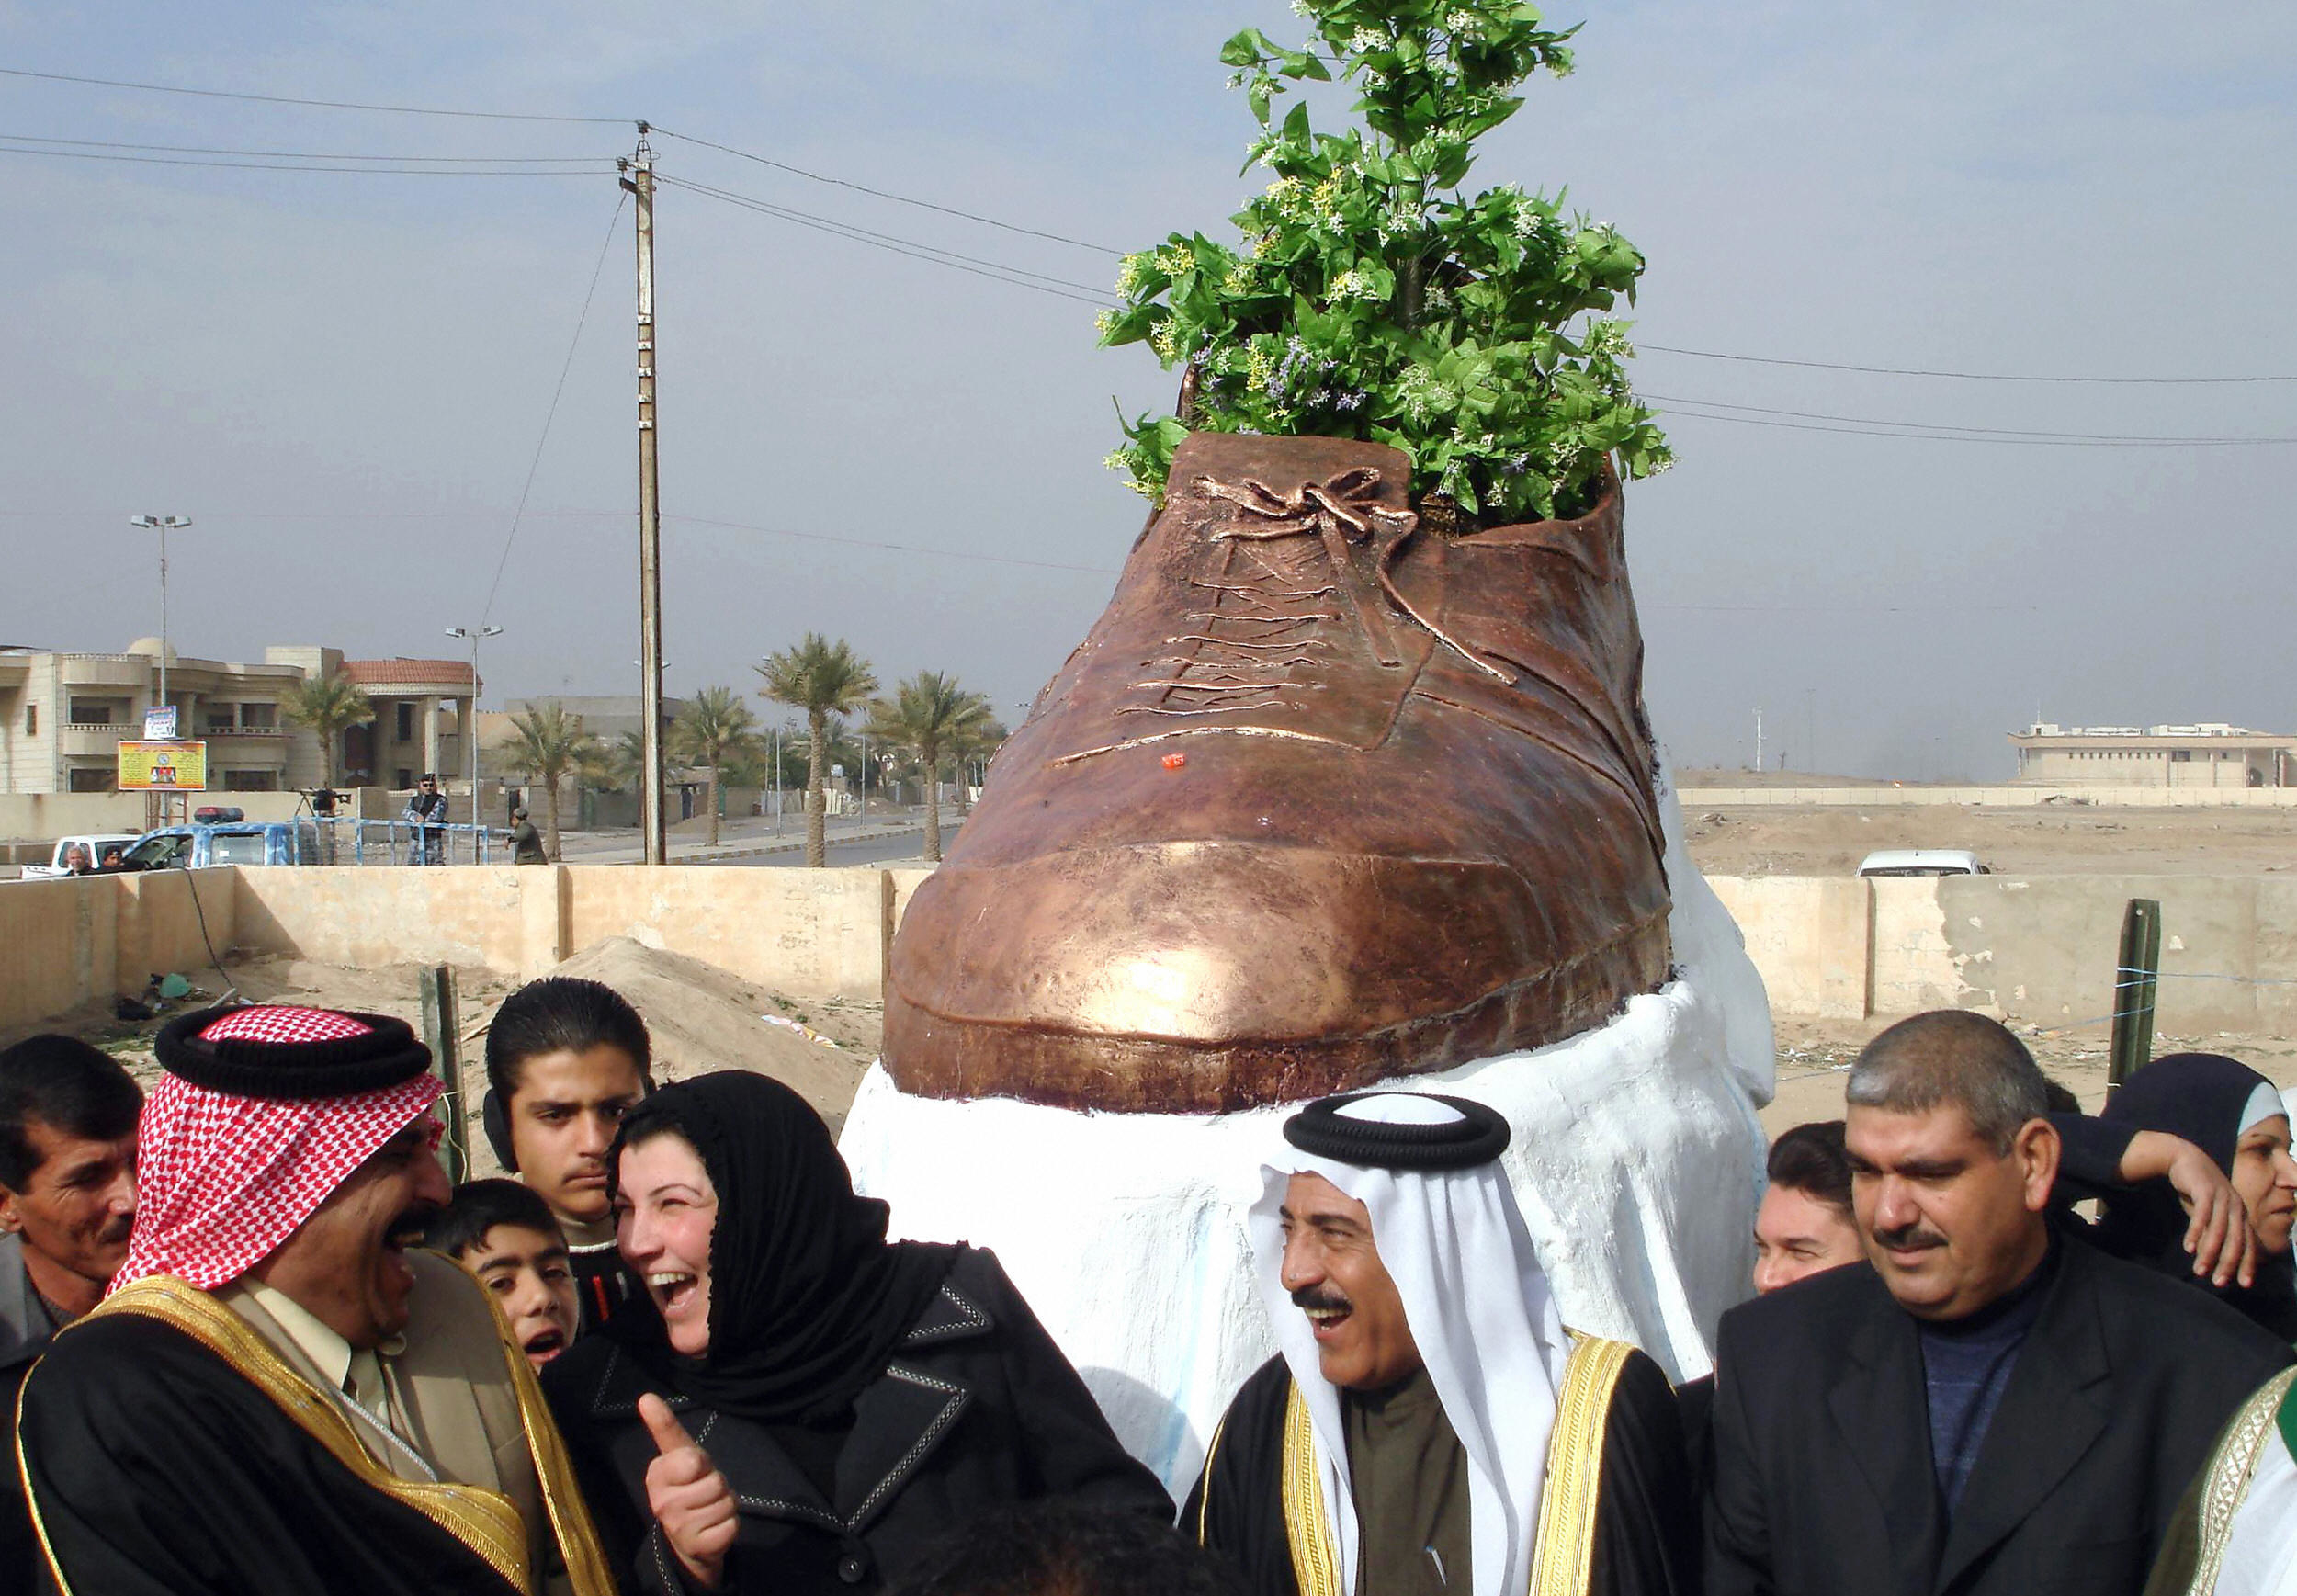 A large bronze shoe with a plant growing out of it